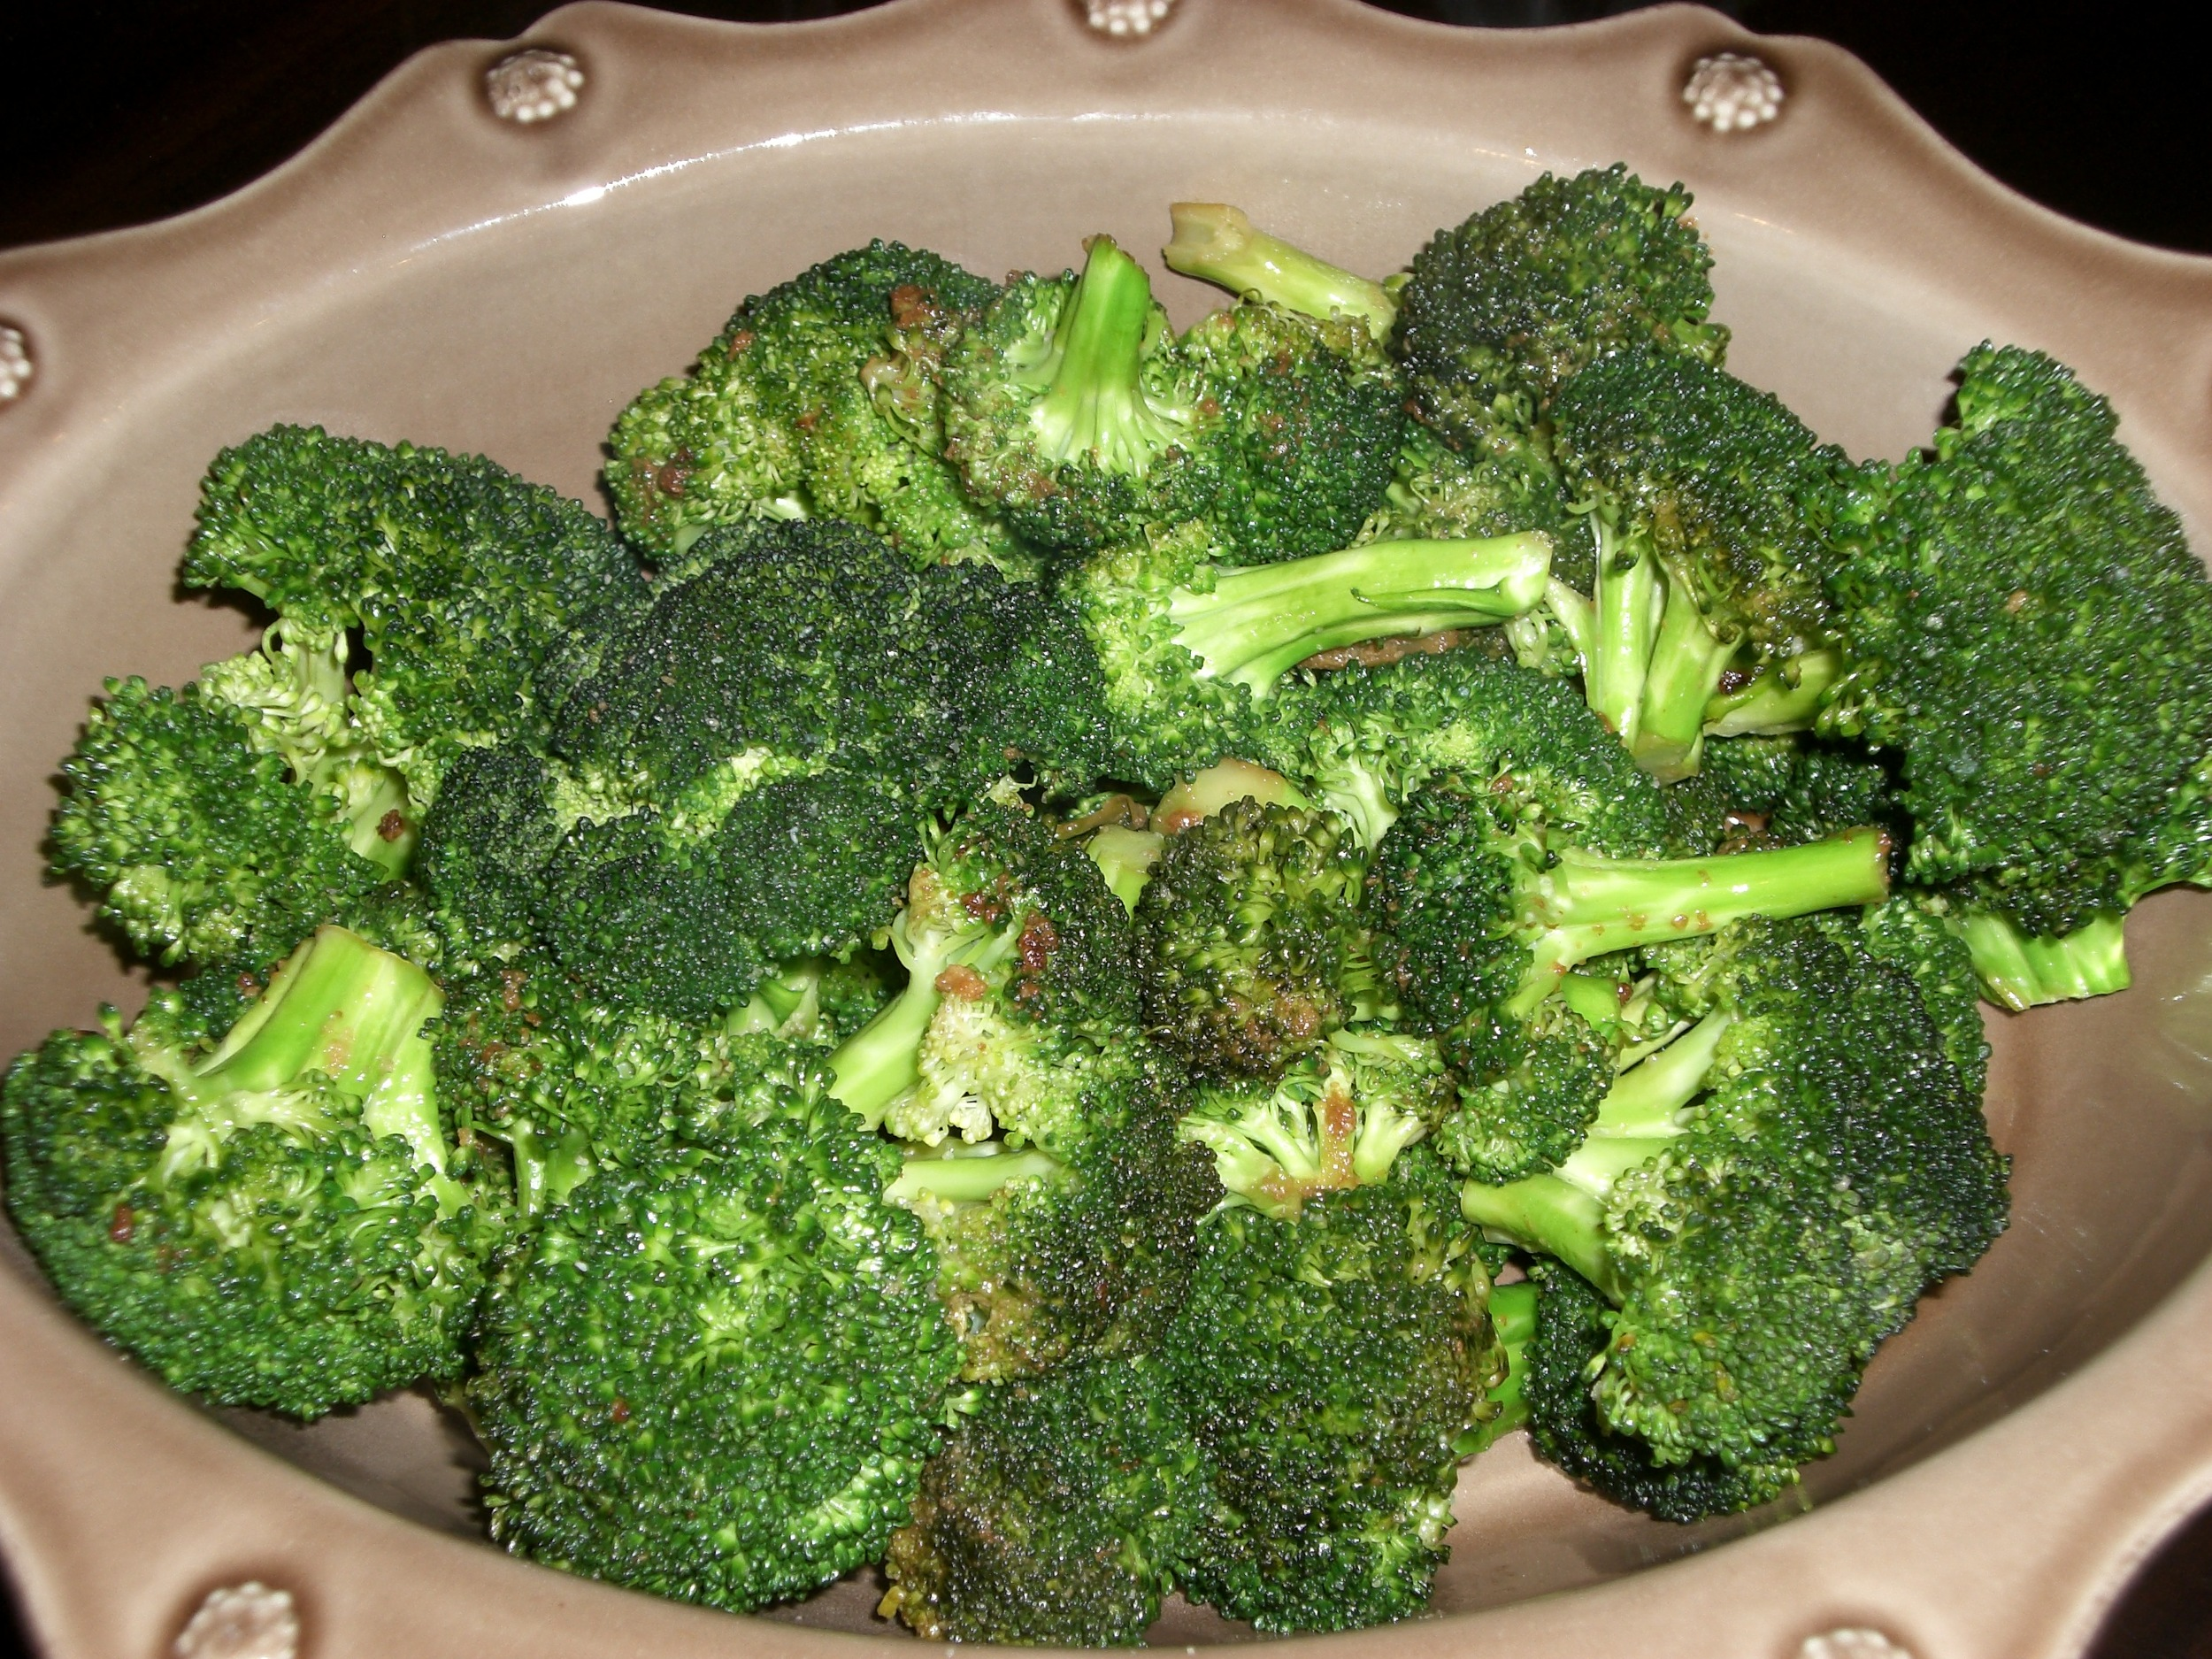 Broccoli is totally vegan and wildly heathy!